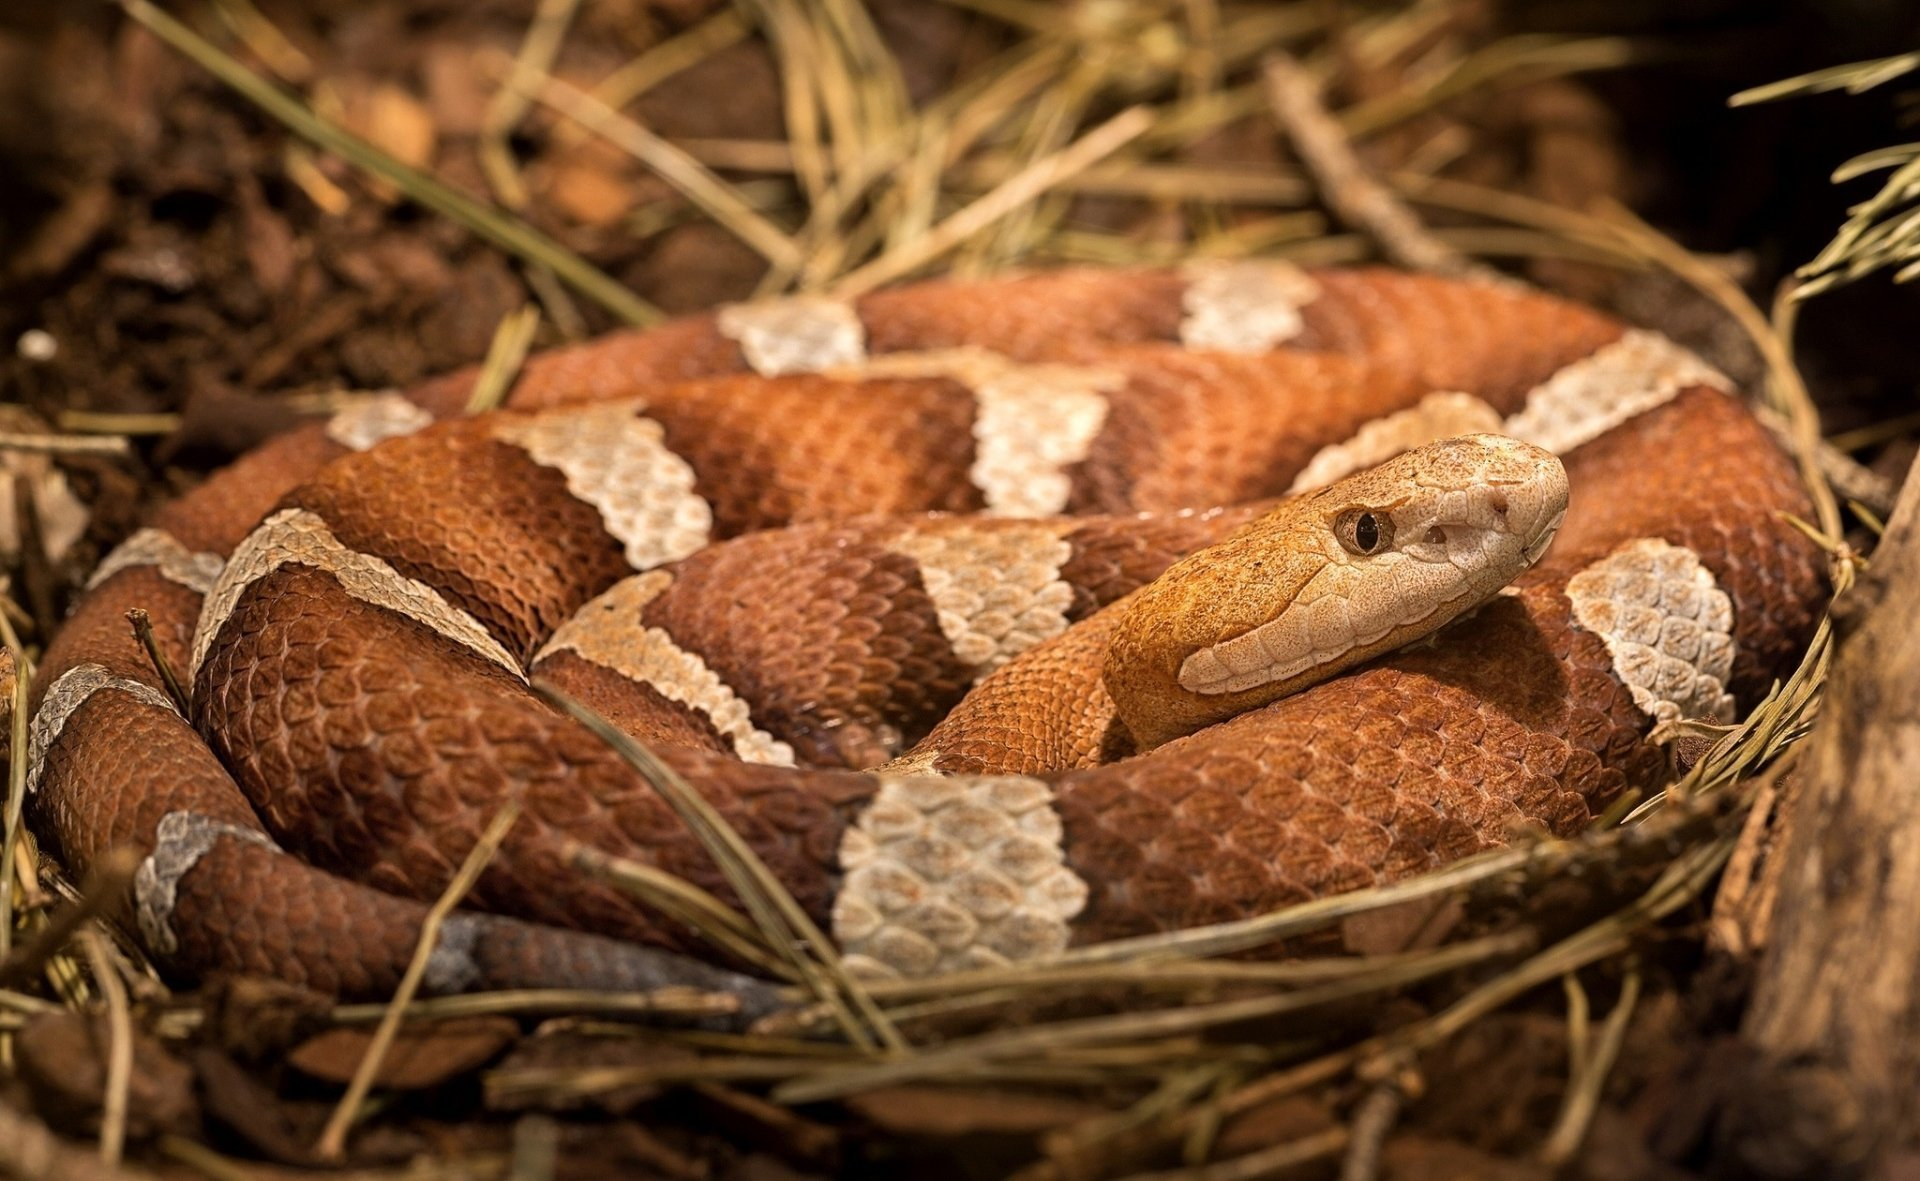 Animal - Snake  Reptile Wildlife Copperhead (Snake) Wallpaper